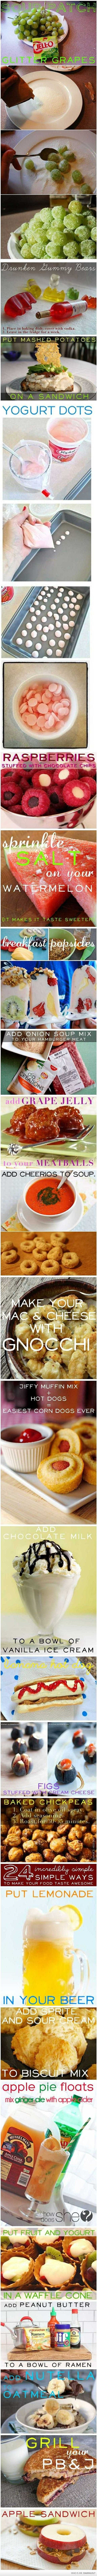 neat ideas..a lot I already do but there a few I'd like to experiment with! I think Scarlett would like the mac n cheese one!